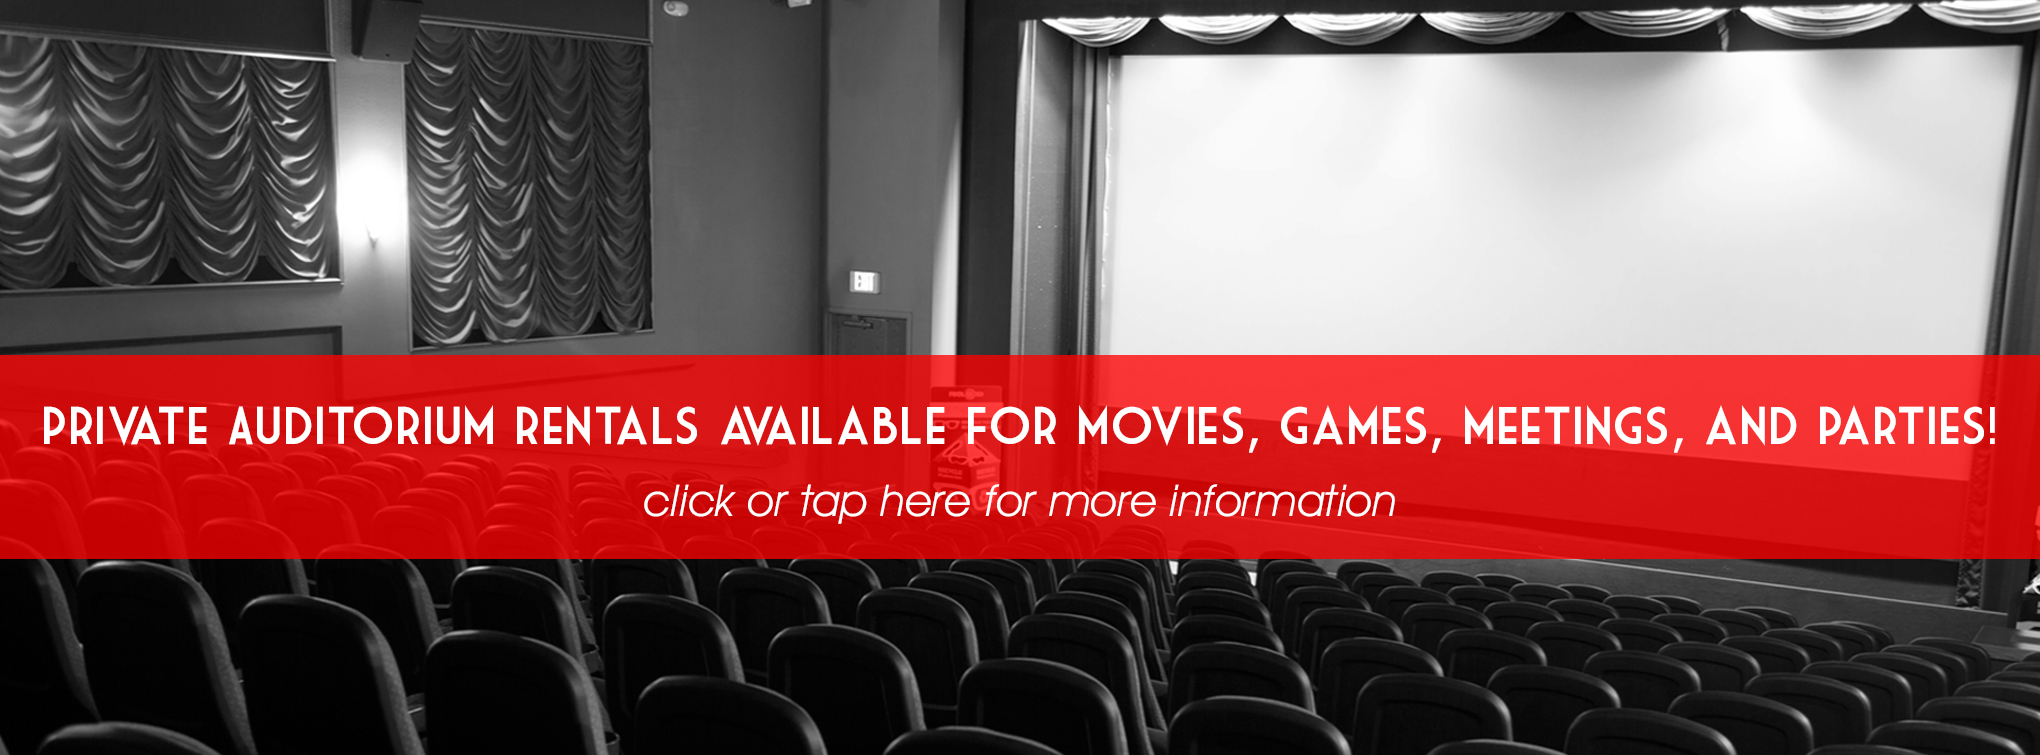 private Auditorium rentals available for movies, games, meetings, and parties! Click or tap here for more information.